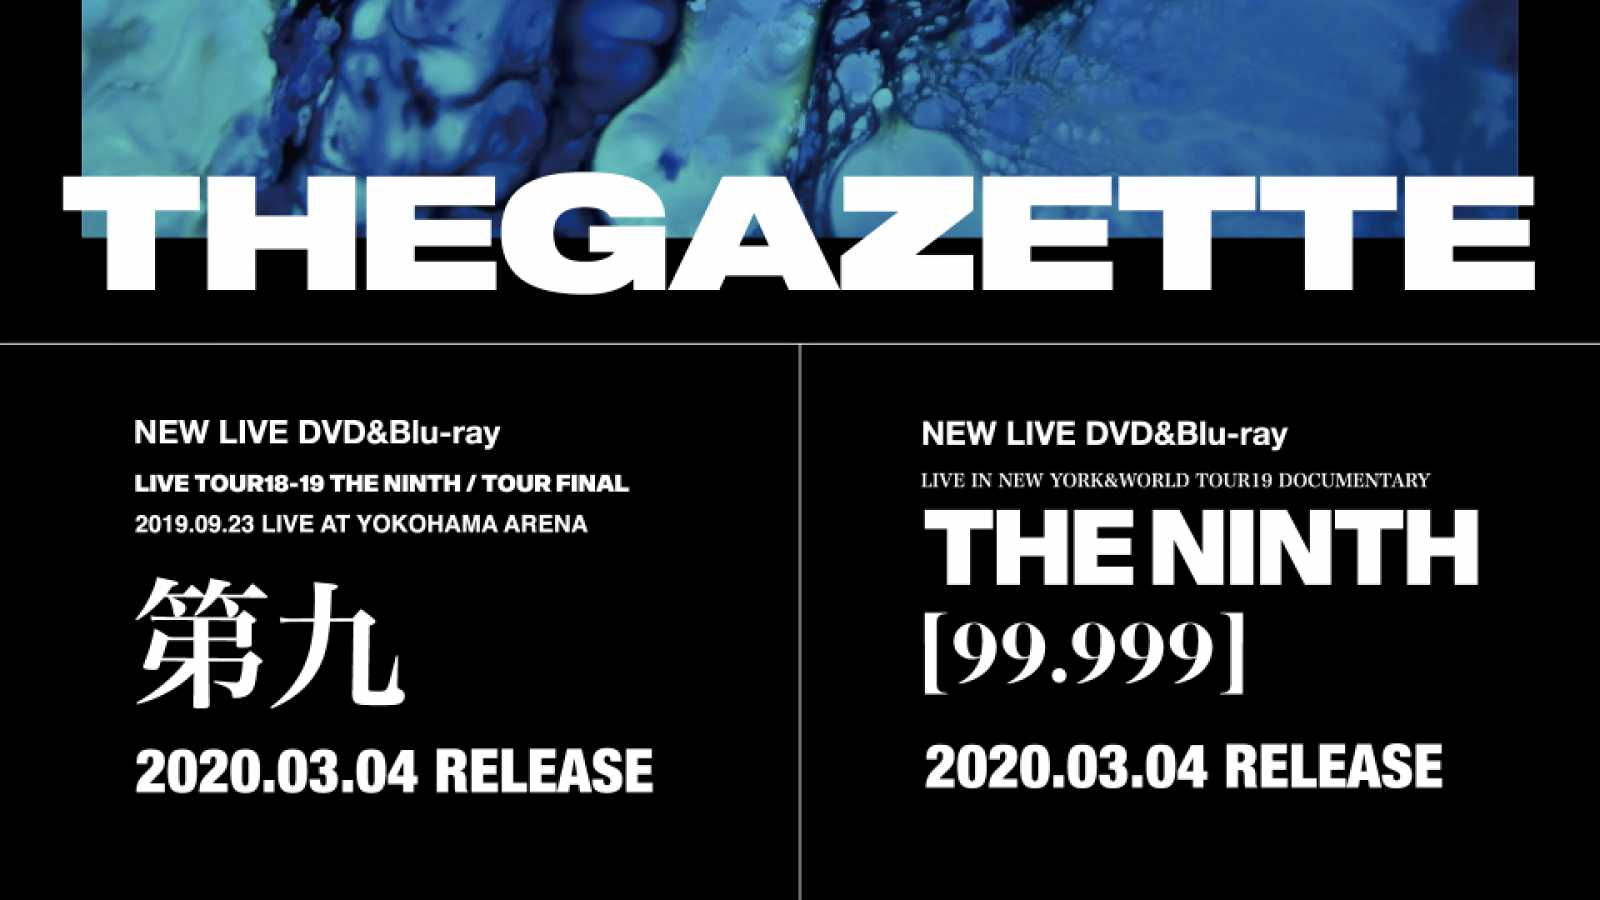 the GazettE lanzará nuevo material audiovisual